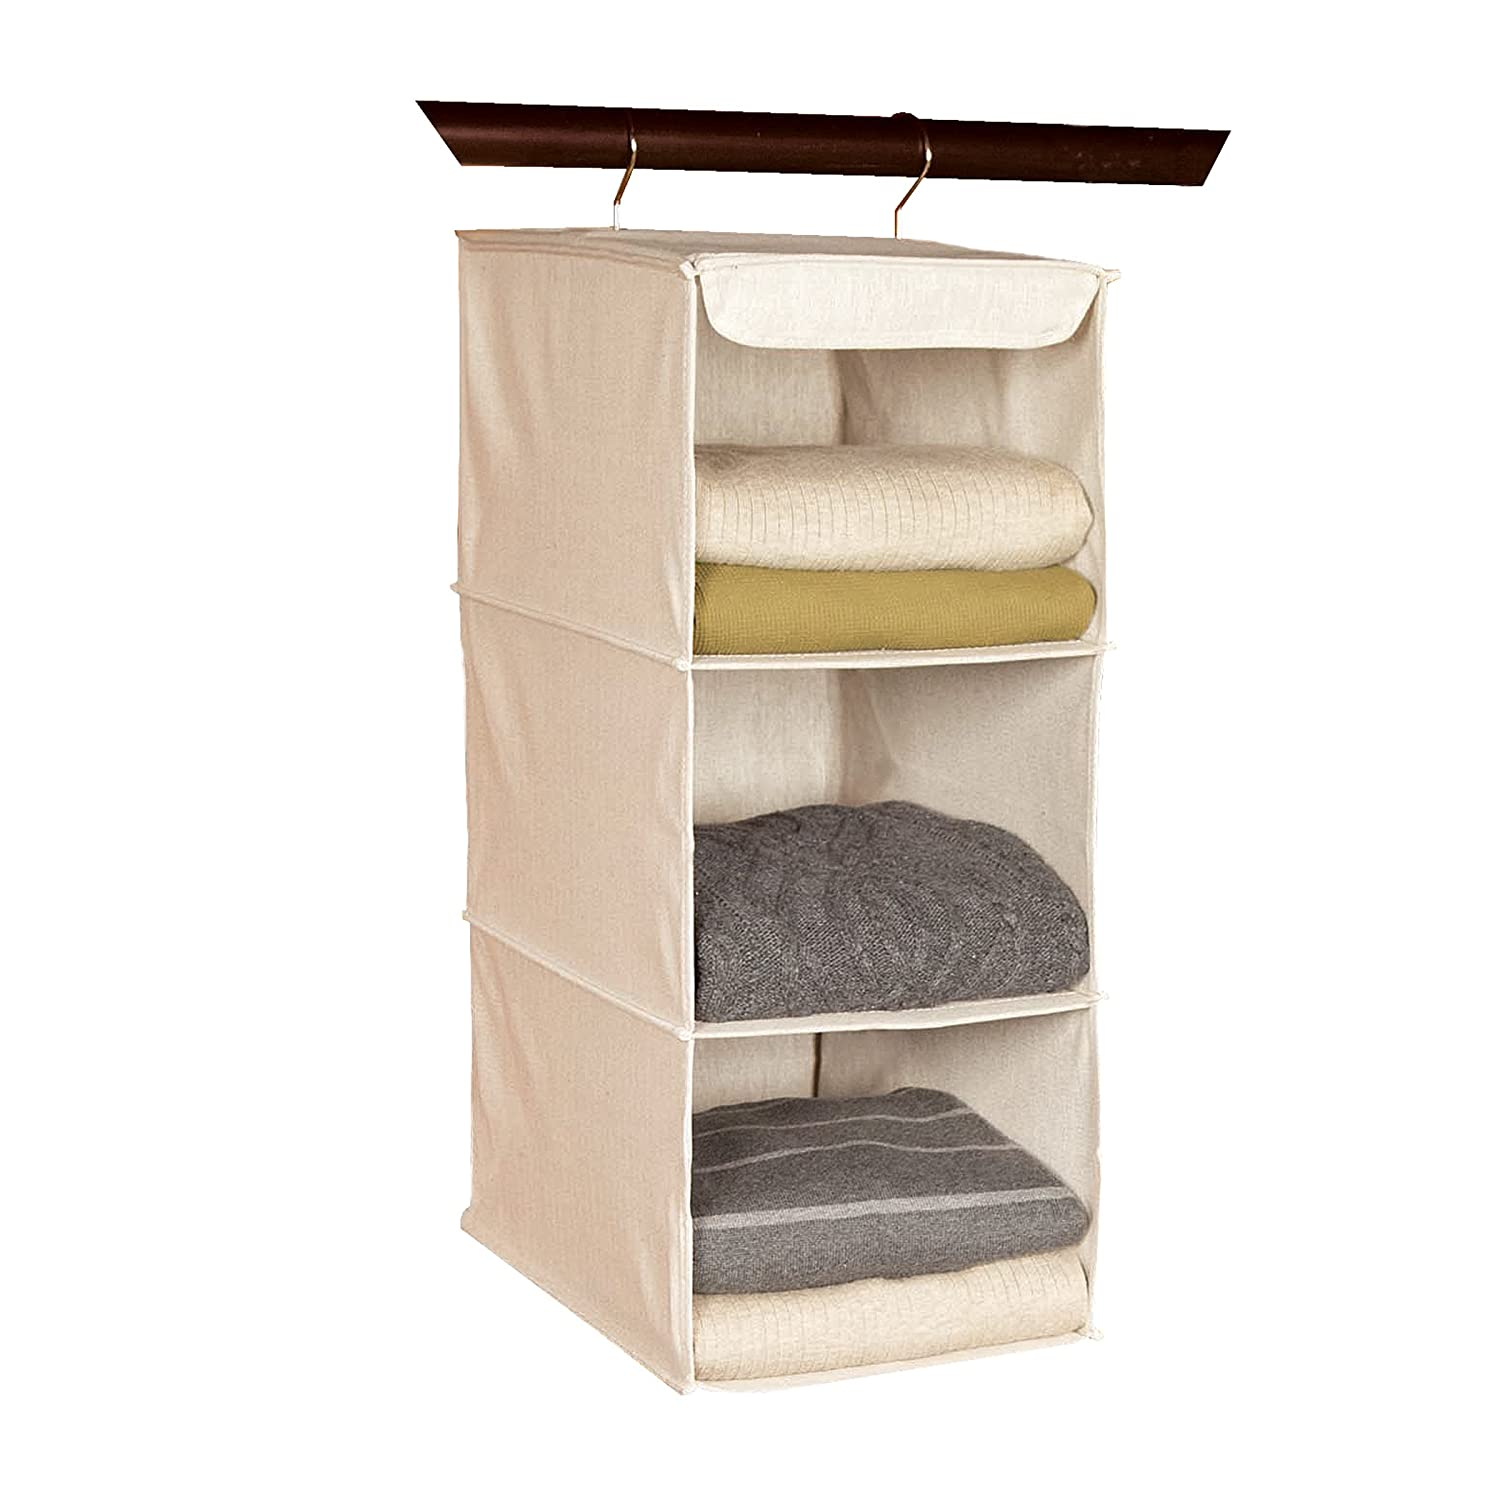 Amazoncom Richards Homewares 3 Shelf Sweater Organizer 10w X 15